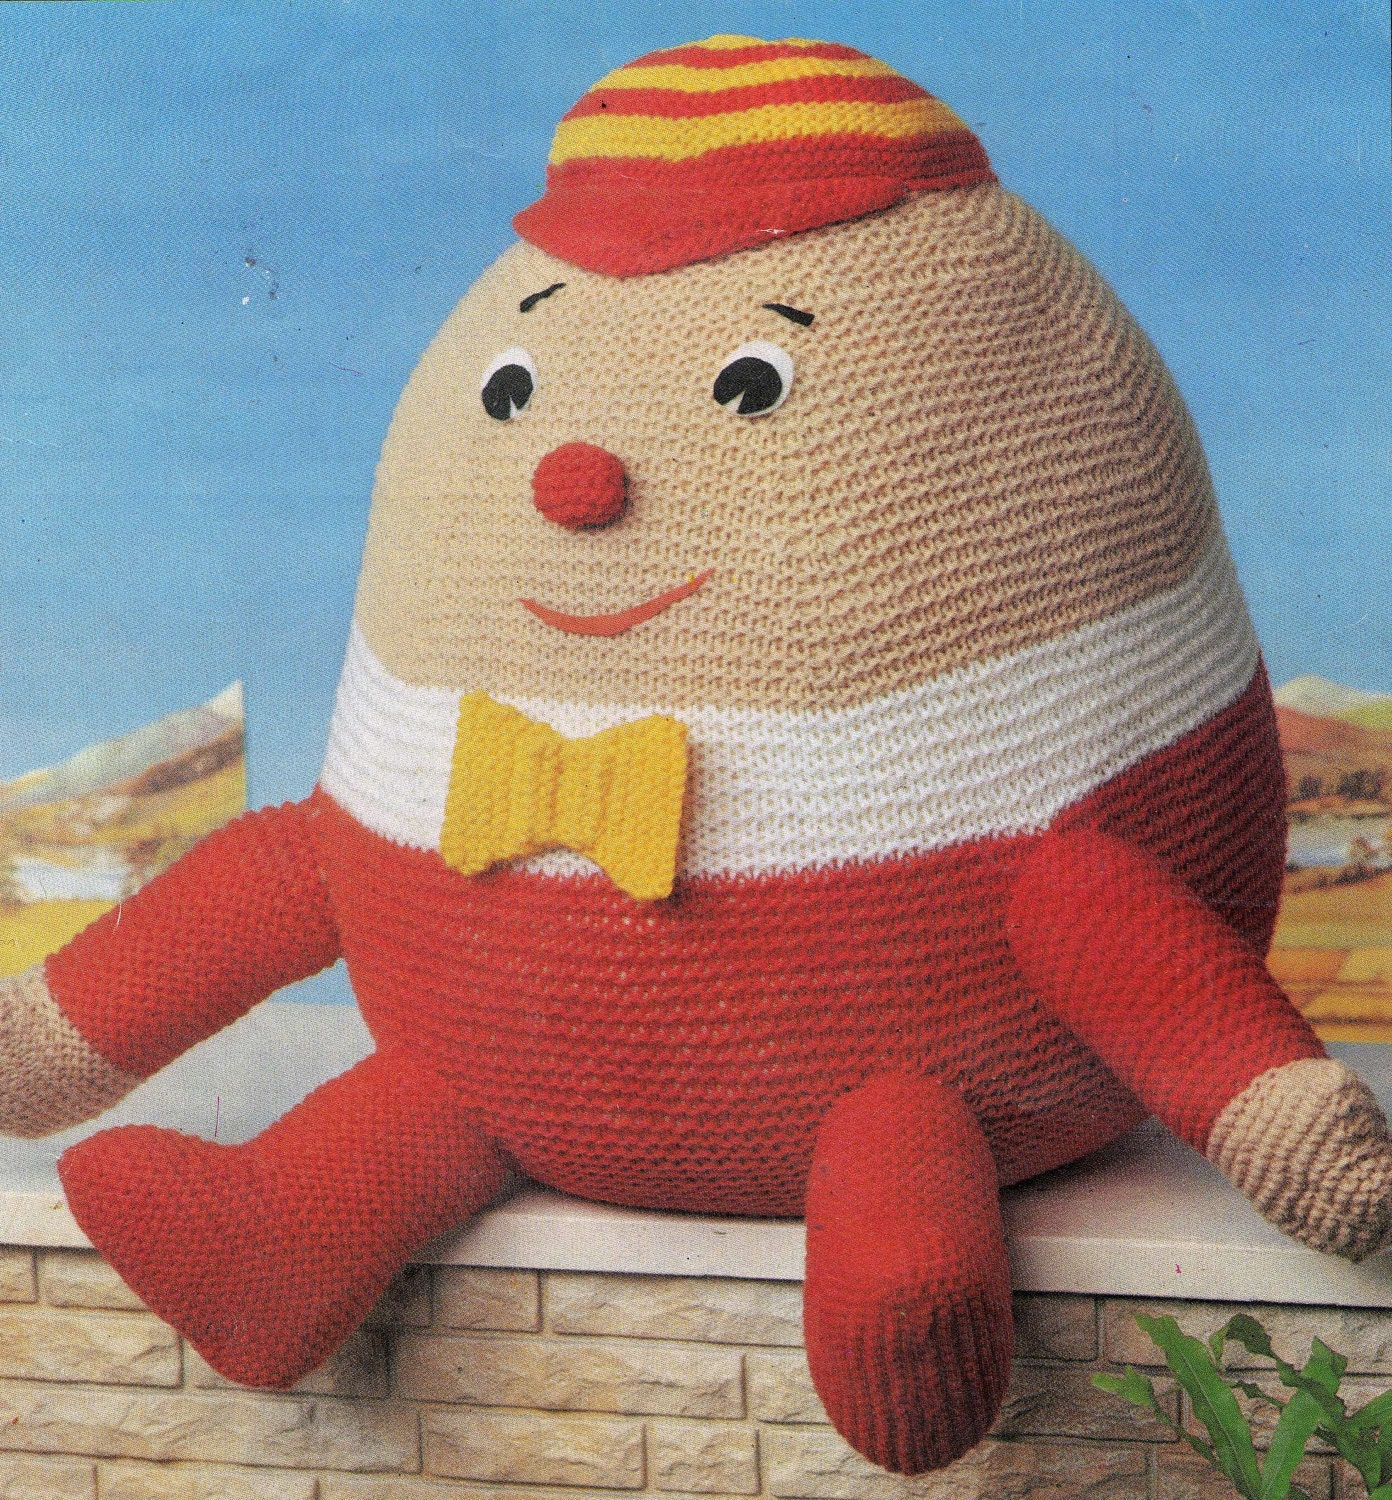 Knitting Pattern For Humpty Dumpty : Items similar to Humpty Dumpty Knitting Pattern pdf on Etsy